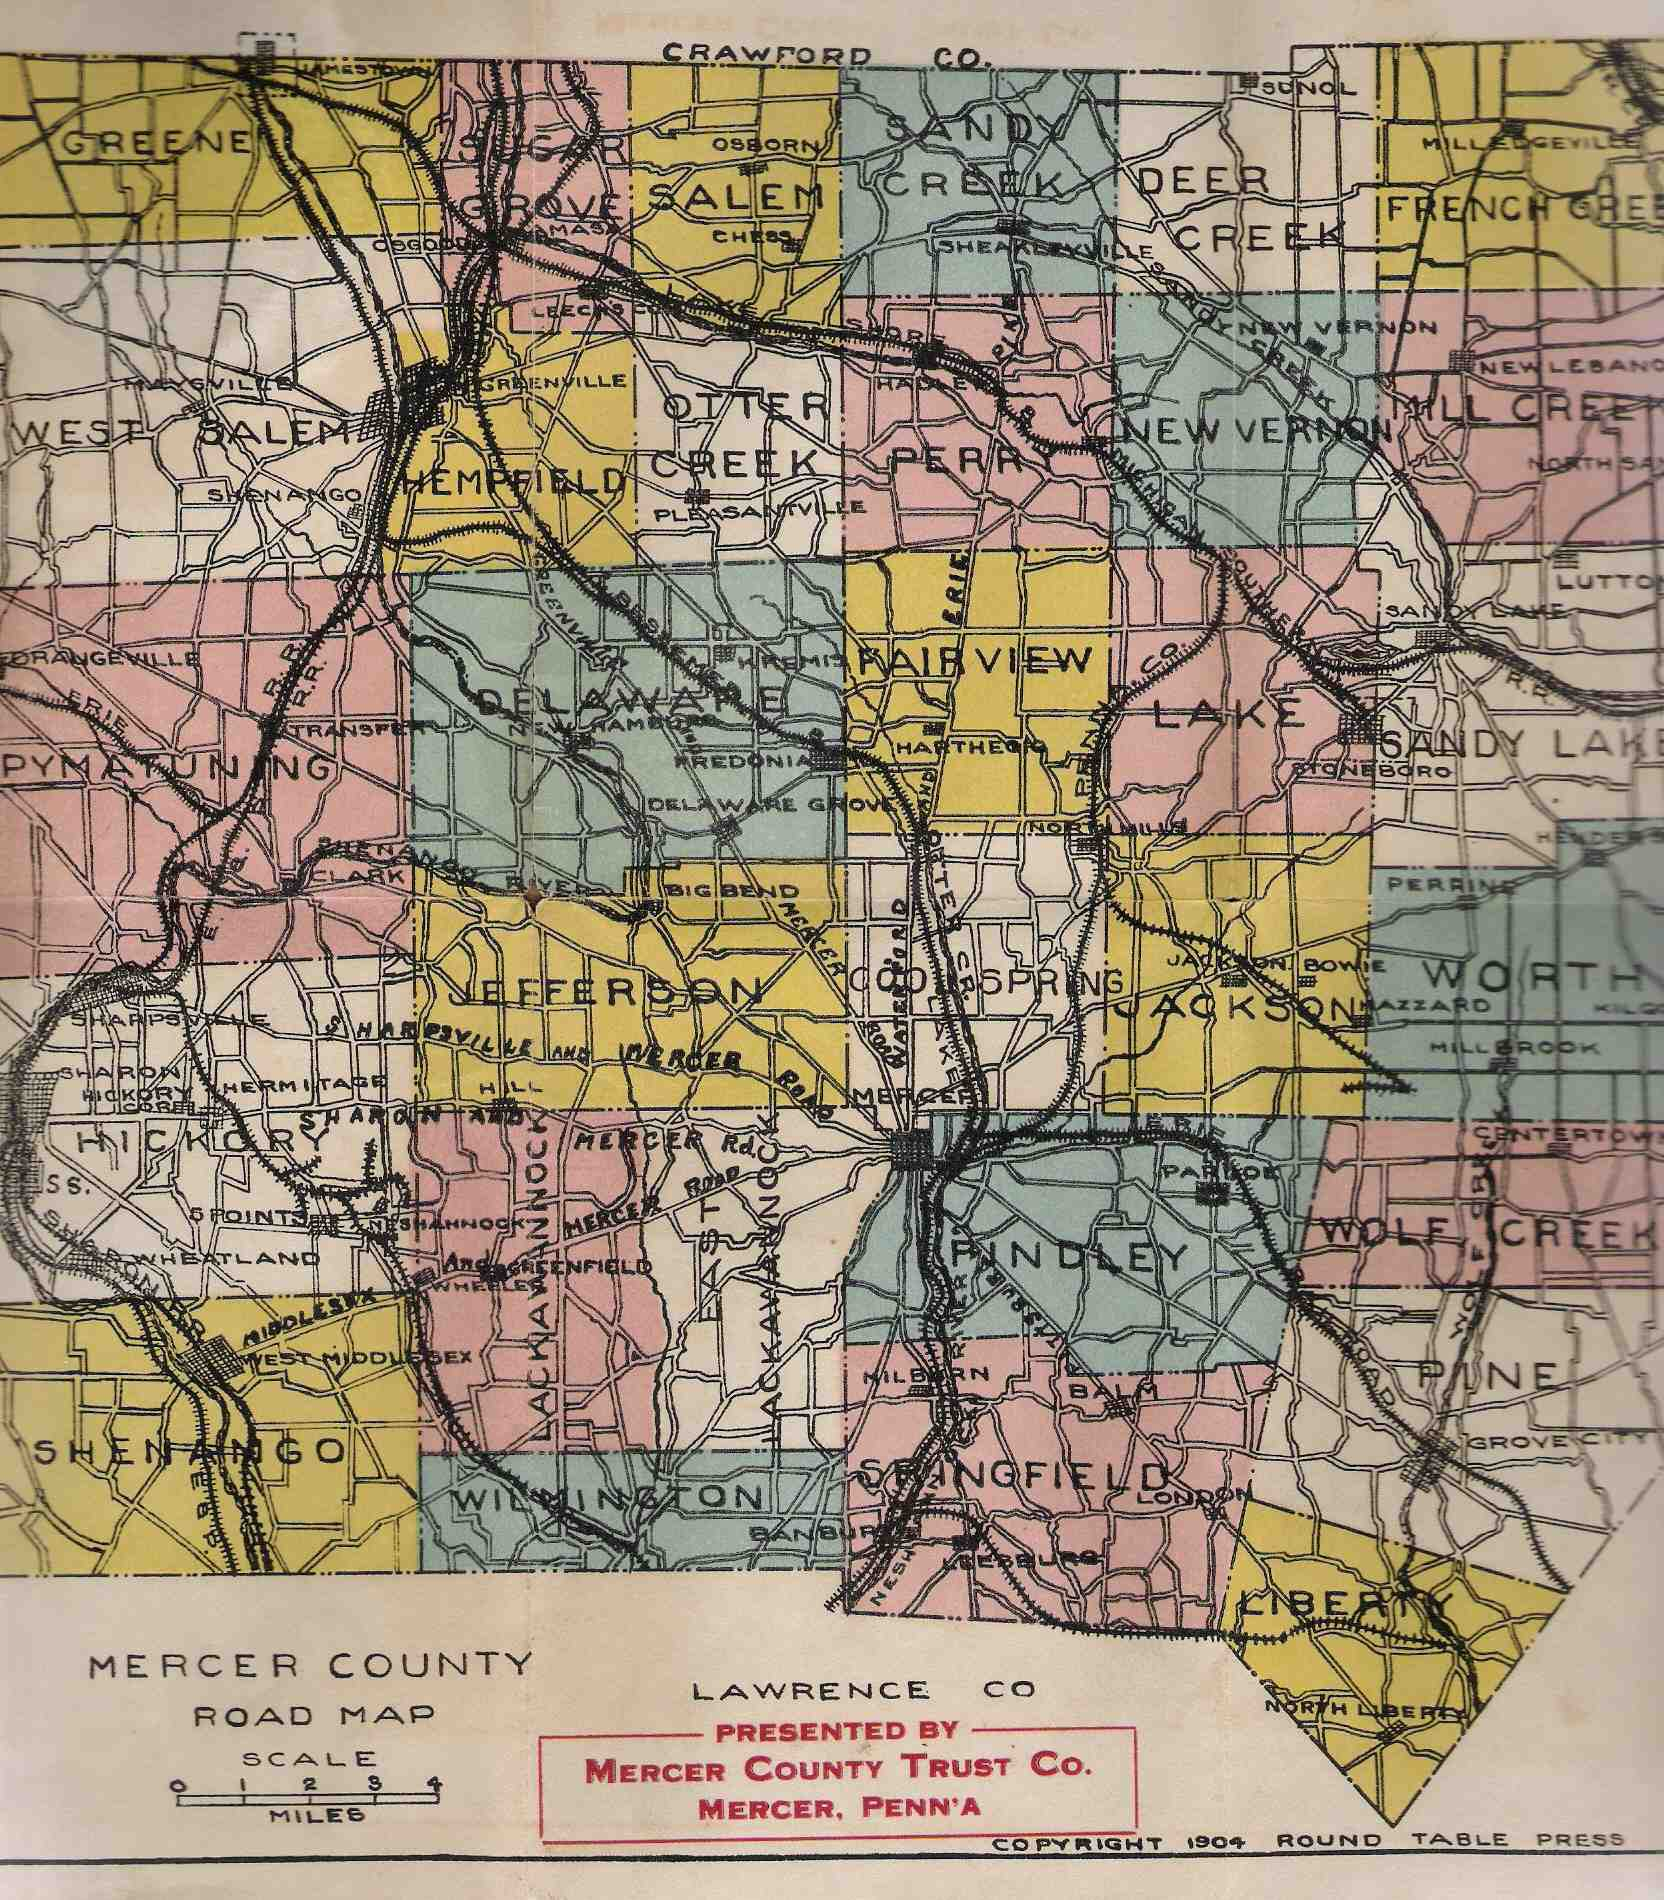 map folds into the 525 x 35 inch brown paper cover shown with the title the townships are color coded and the road network is shown in great detail